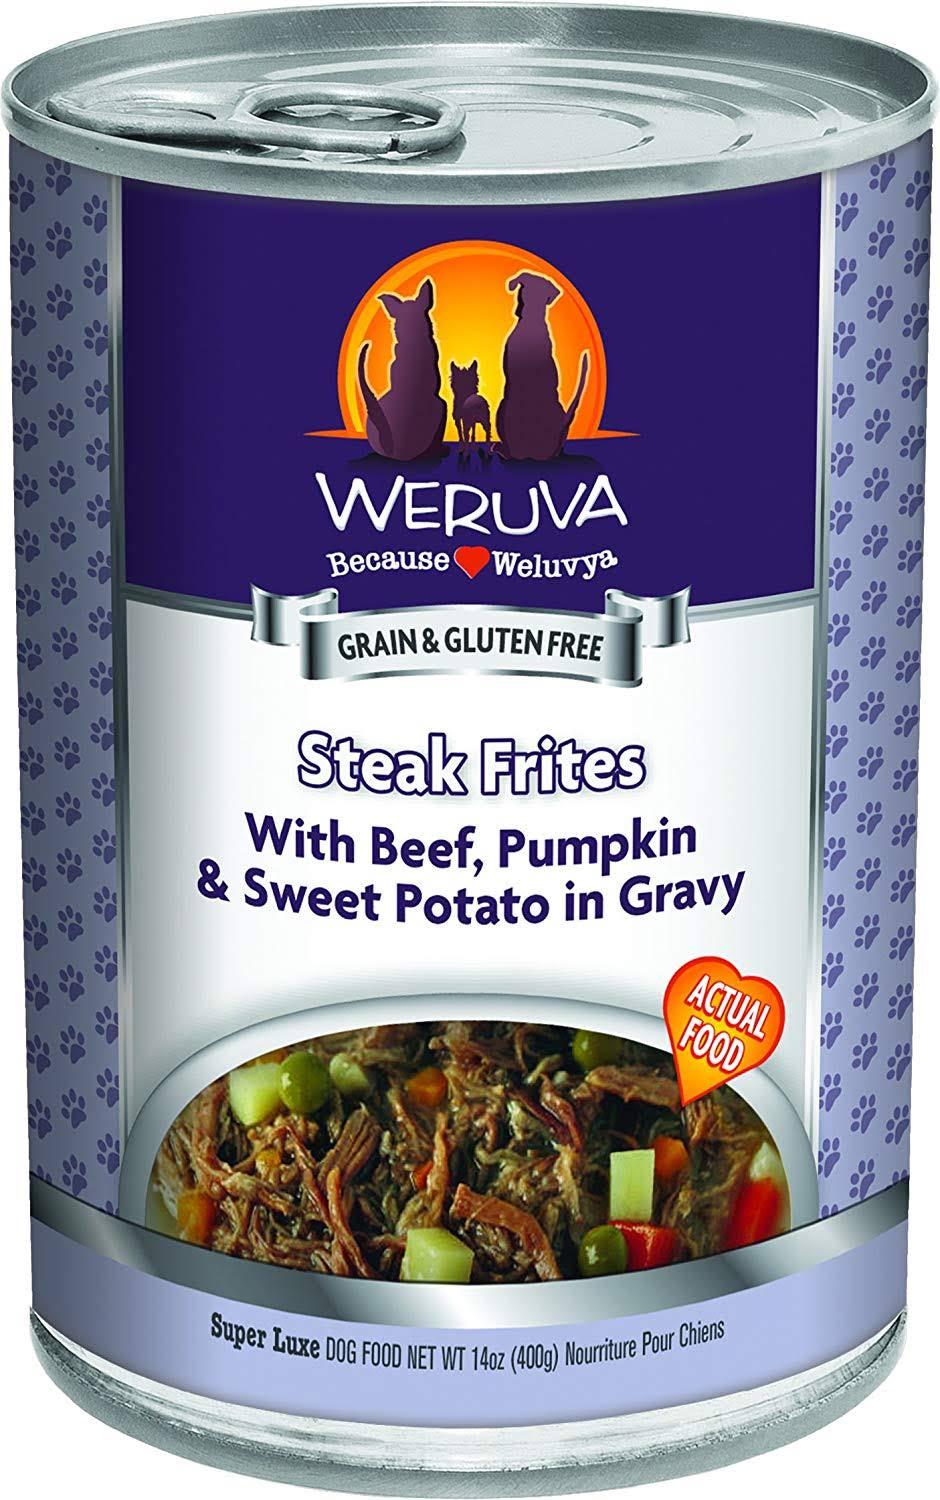 Weruva Dog Food - Steak Frites